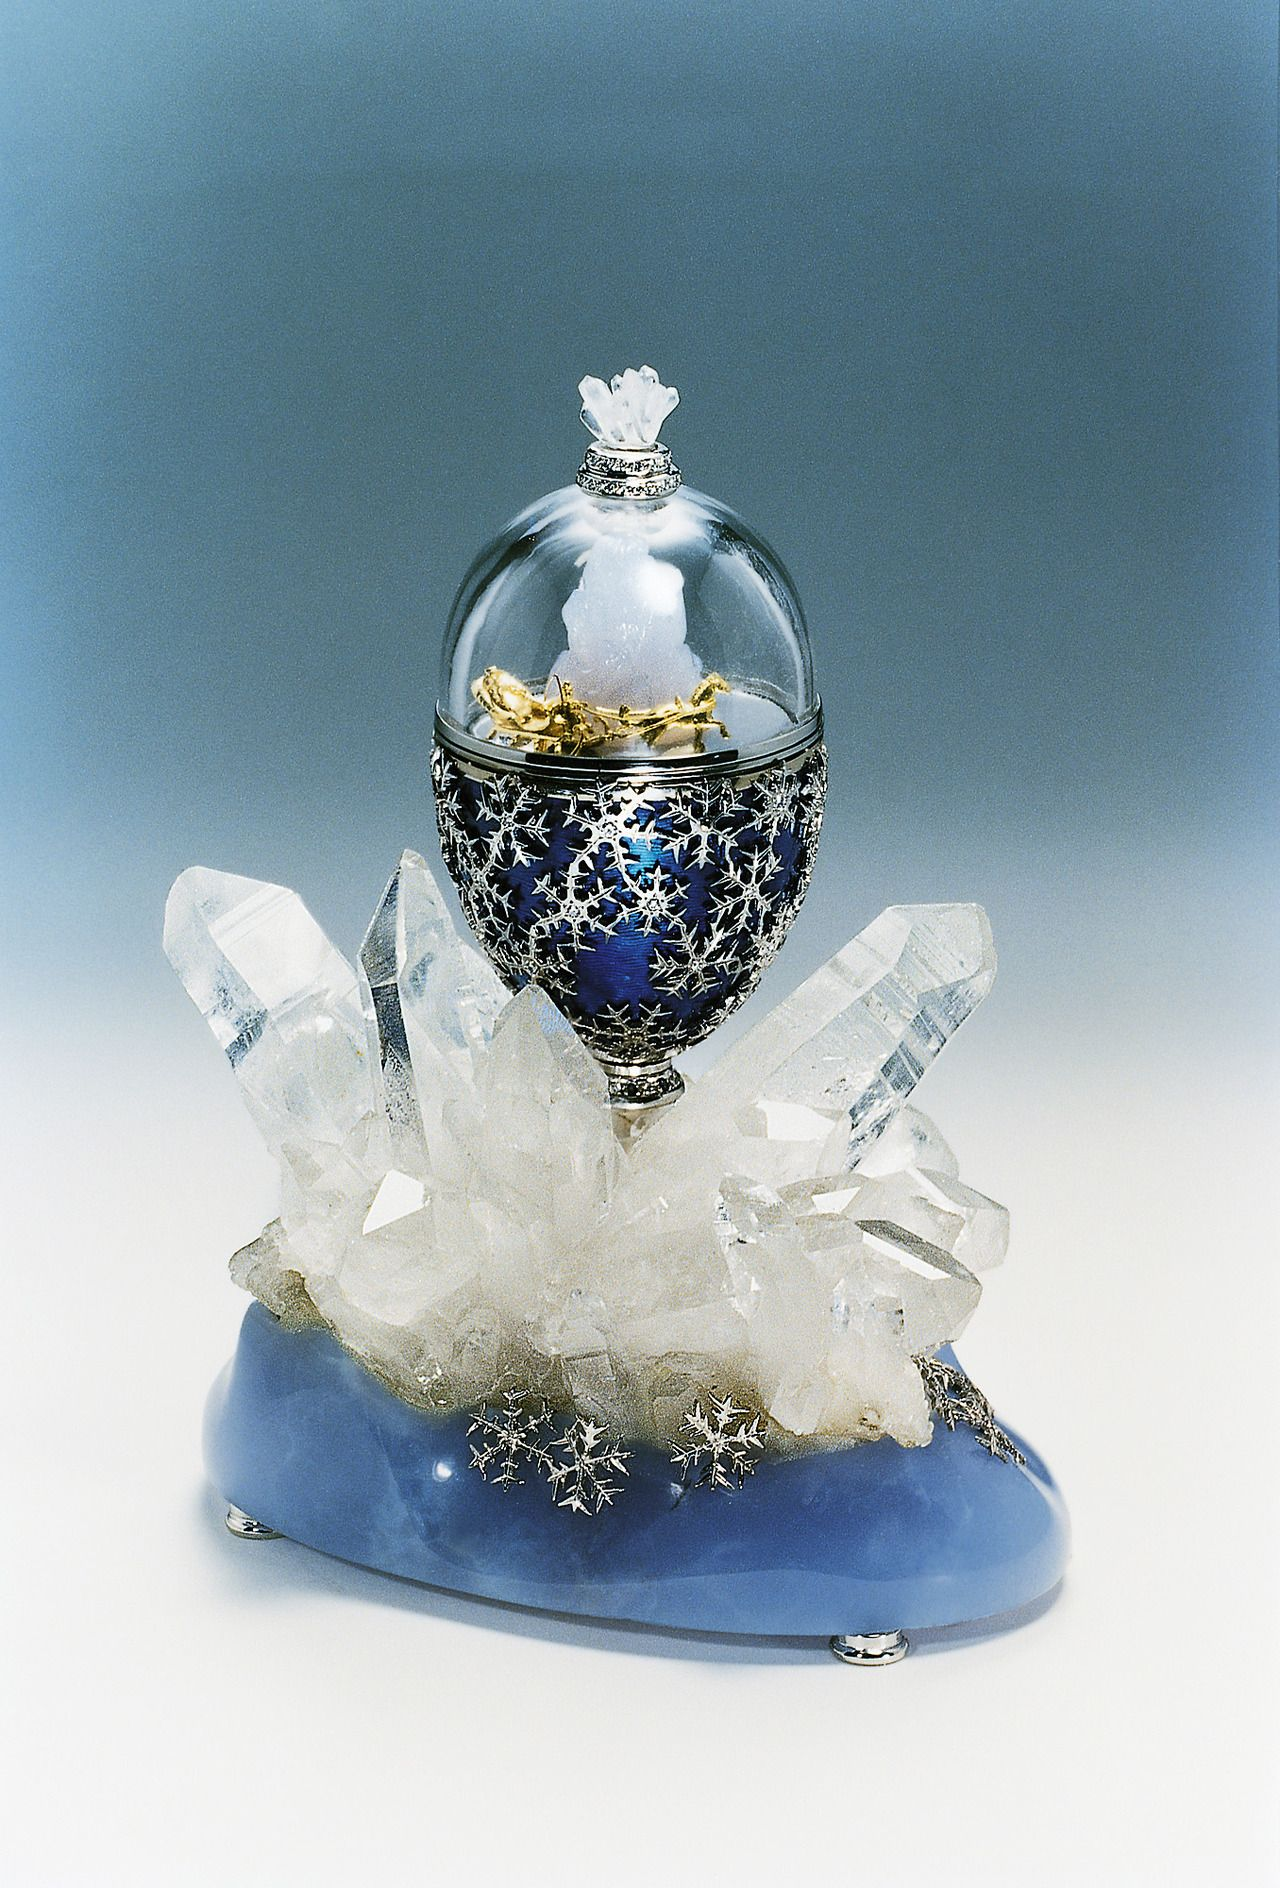 Beautiful Faberge egg - I saw an exhibit of these in San Francisco ...